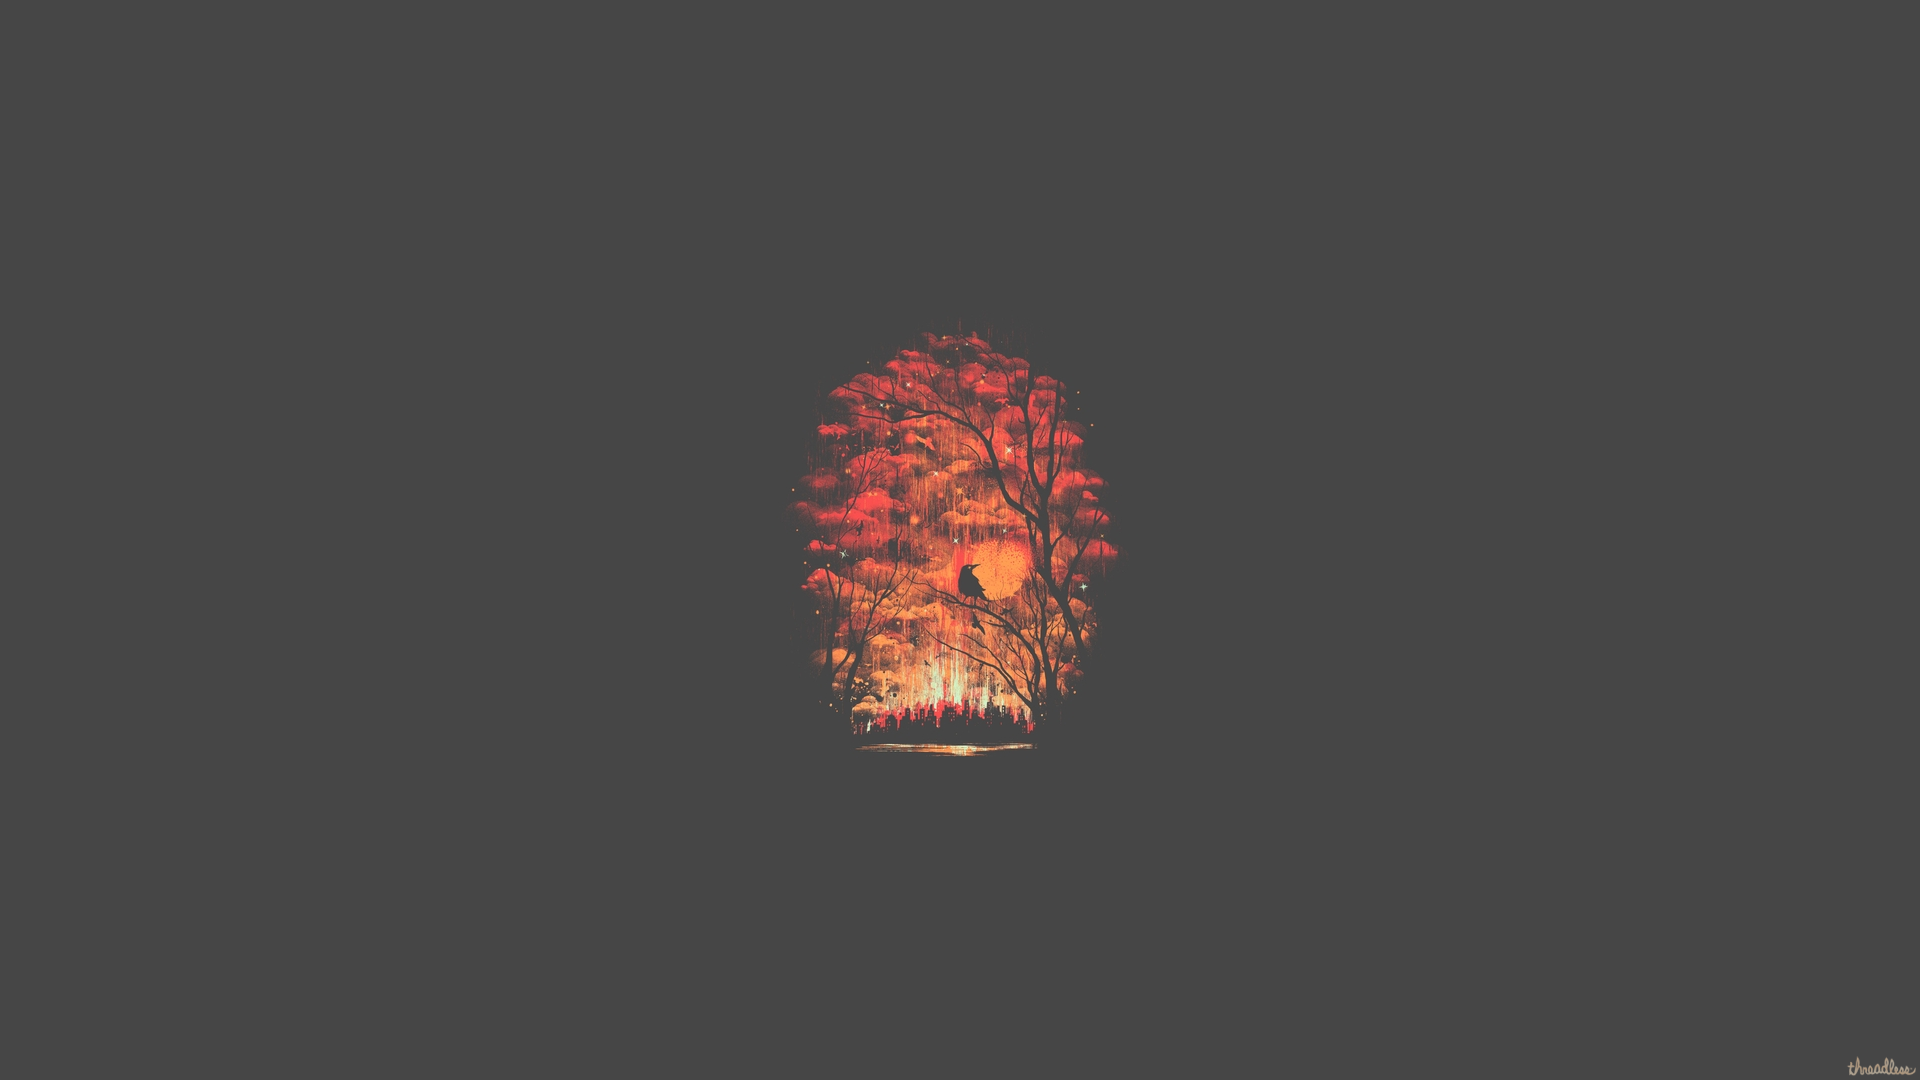 Forest Minimalist Hd Artist 4k Wallpapers Images